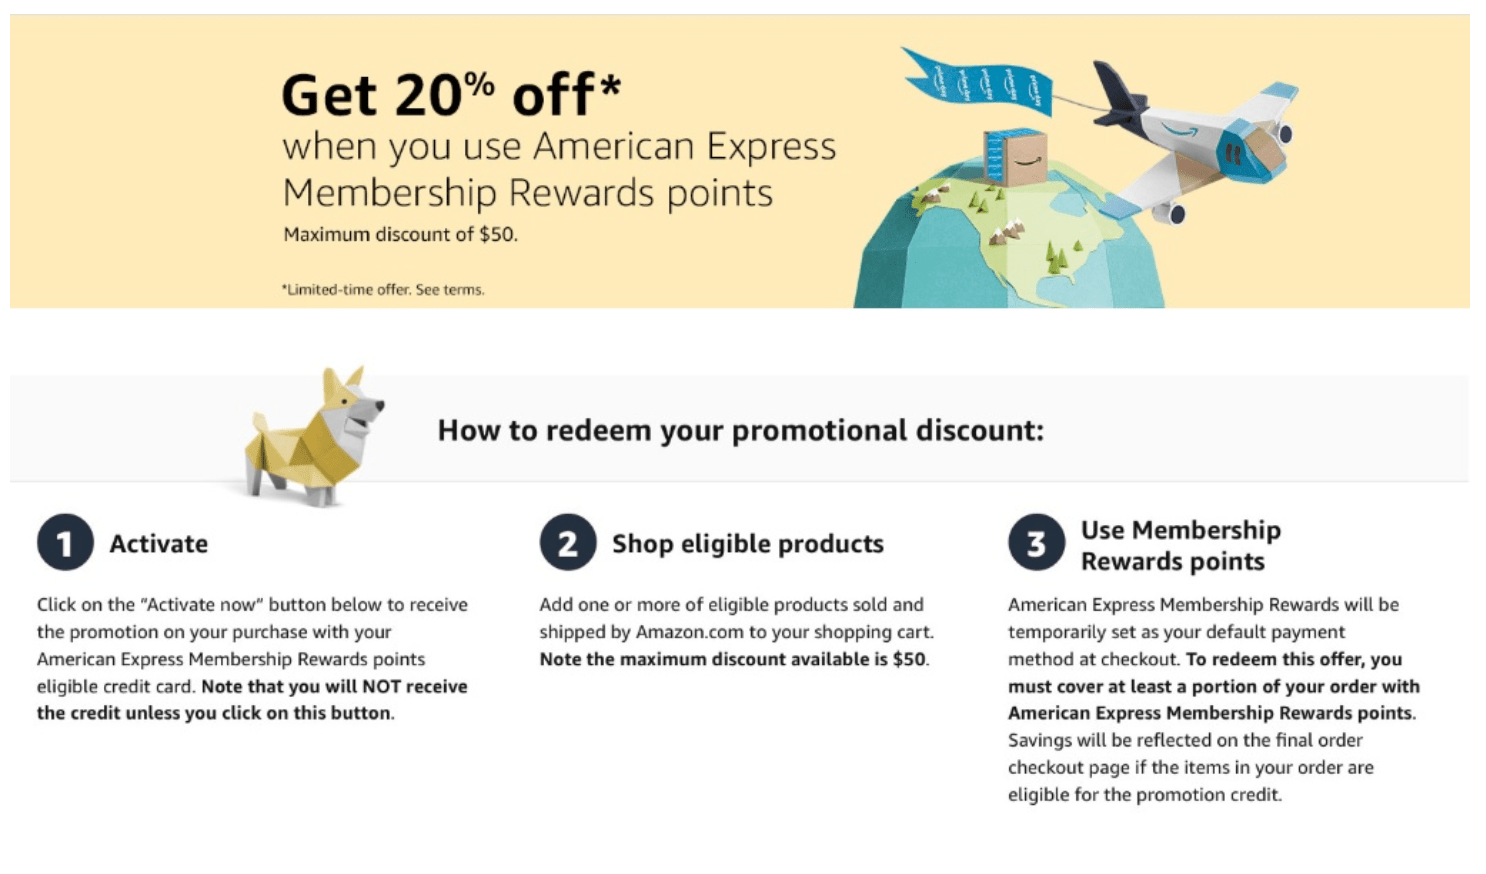 American Express and Amazon target shoppers to get 20% discount on Amazon.